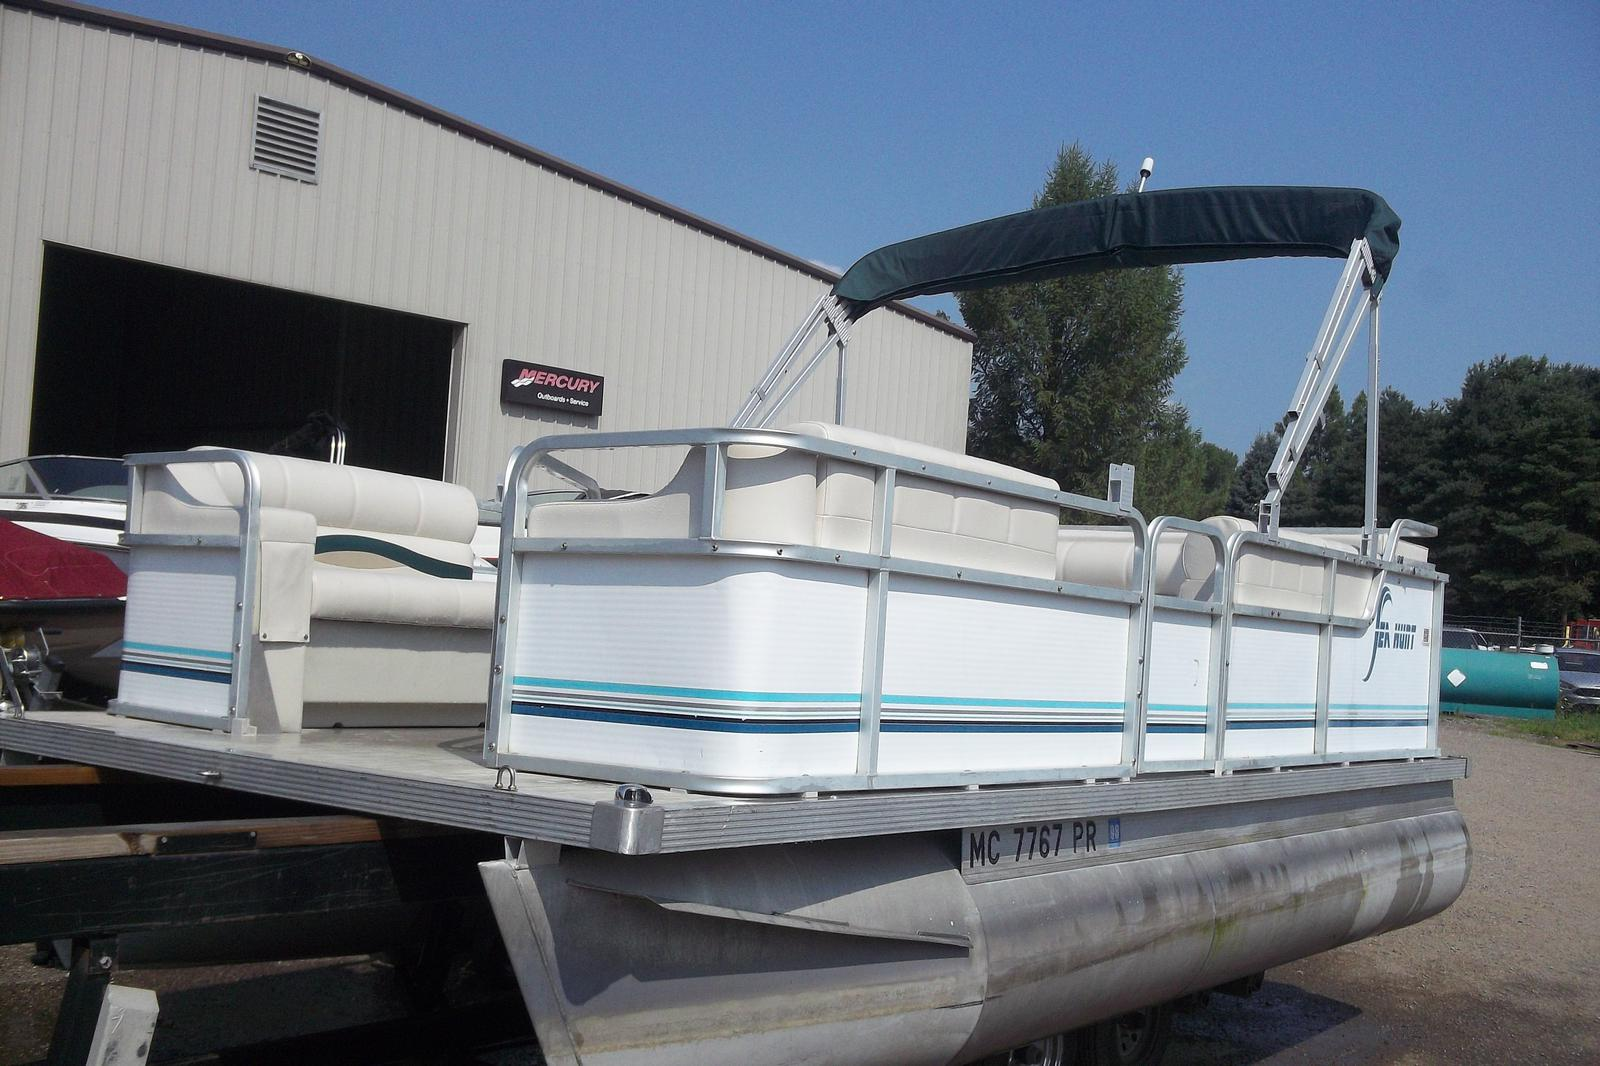 Other 16 boats for sale - Boat Trader